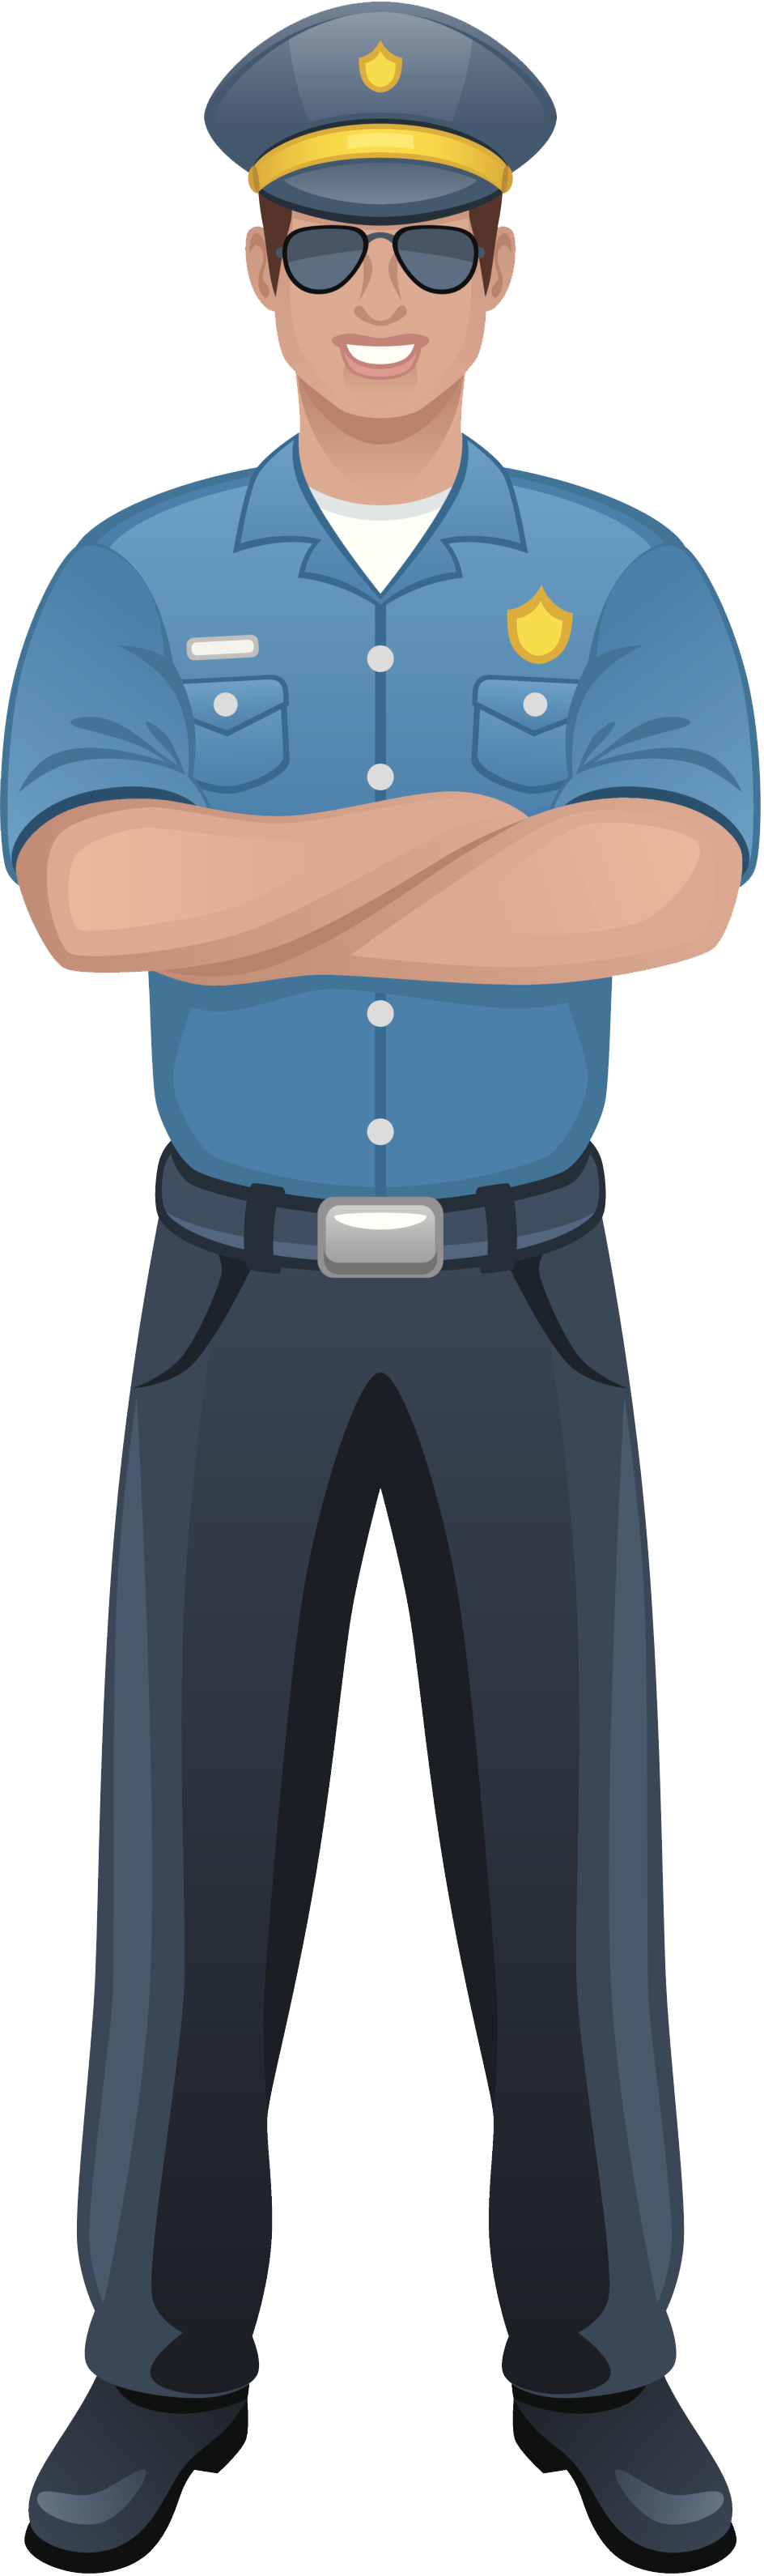 Kids clipart police officer. Traffic policman pencil and